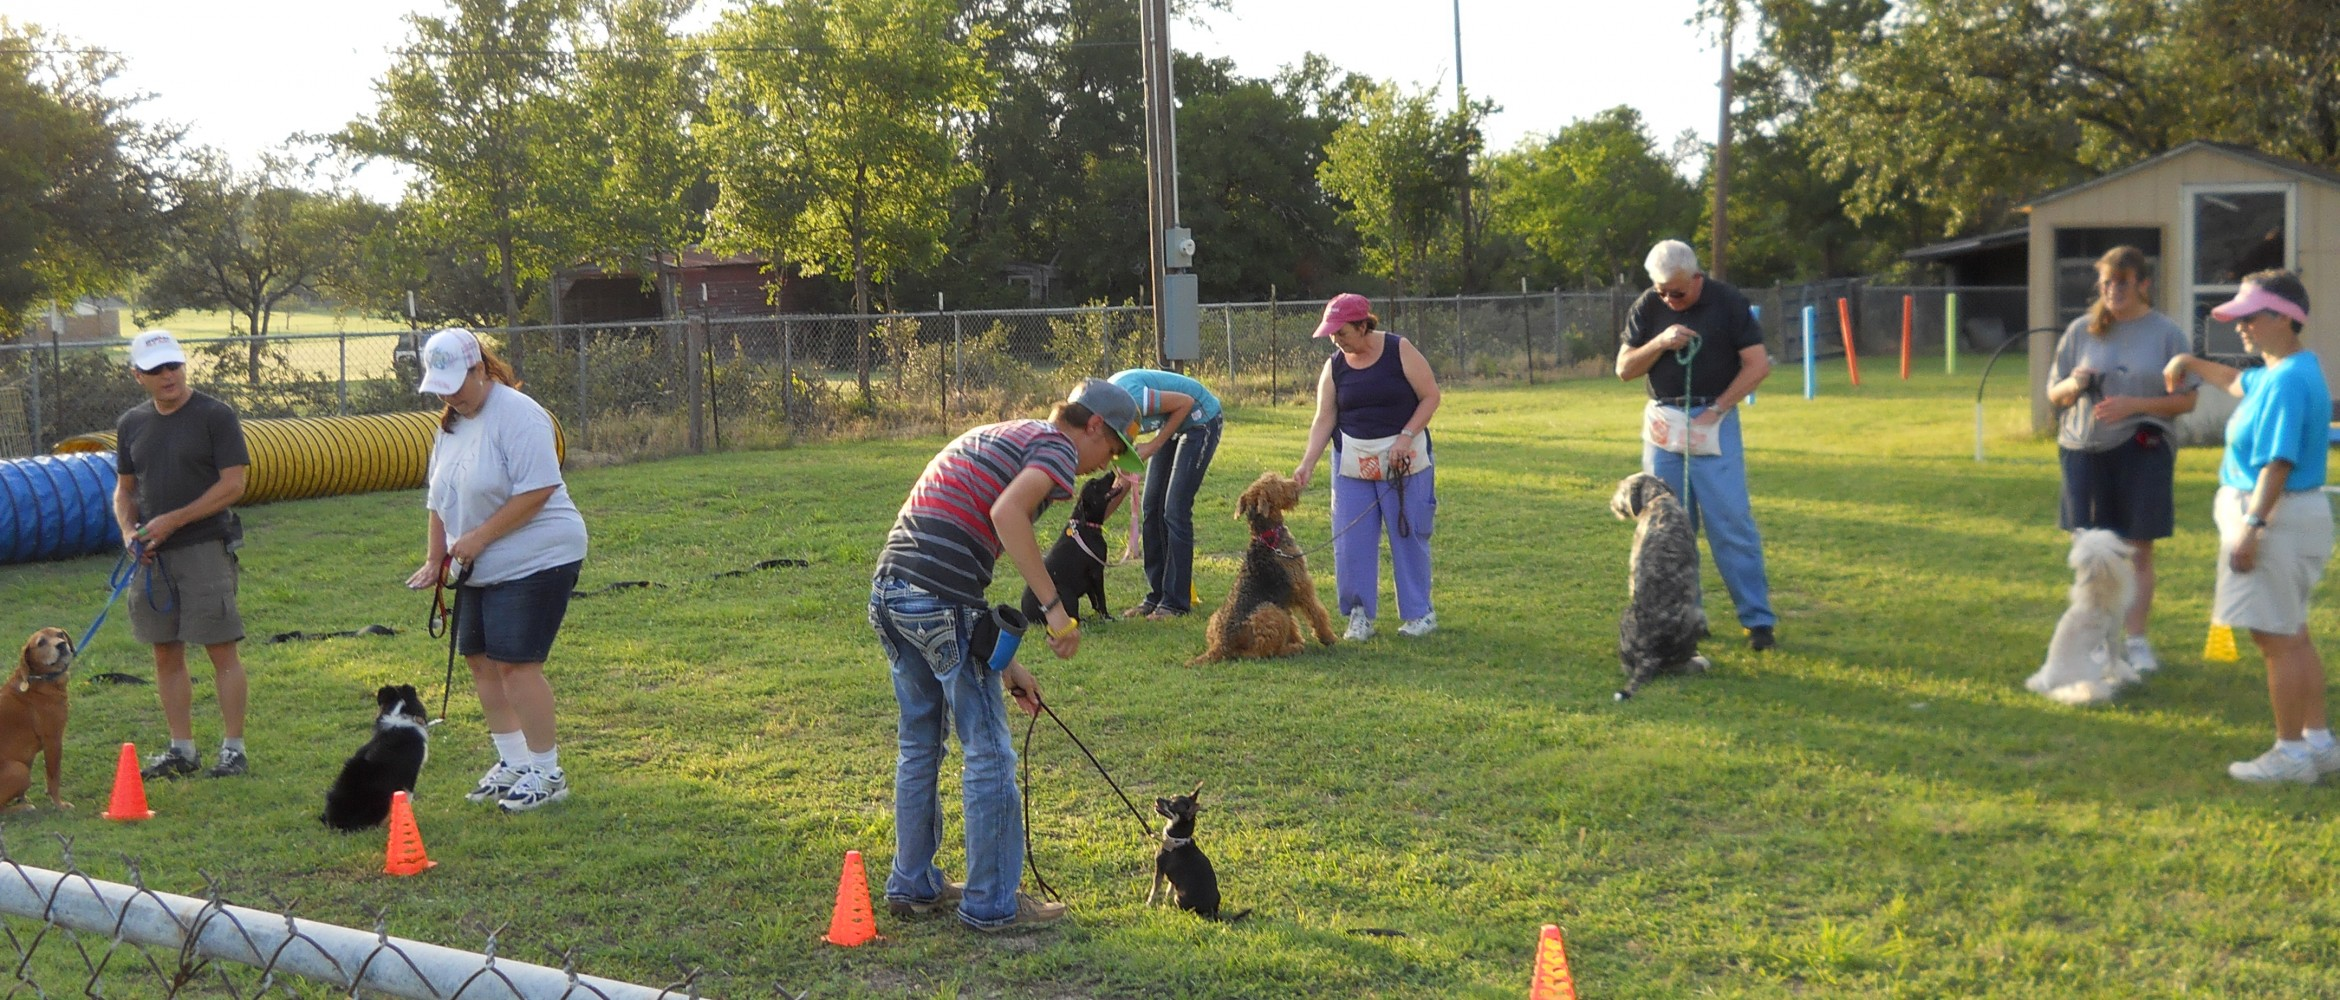 Cowtown Dog Sports - Dog Training Classes in Agility